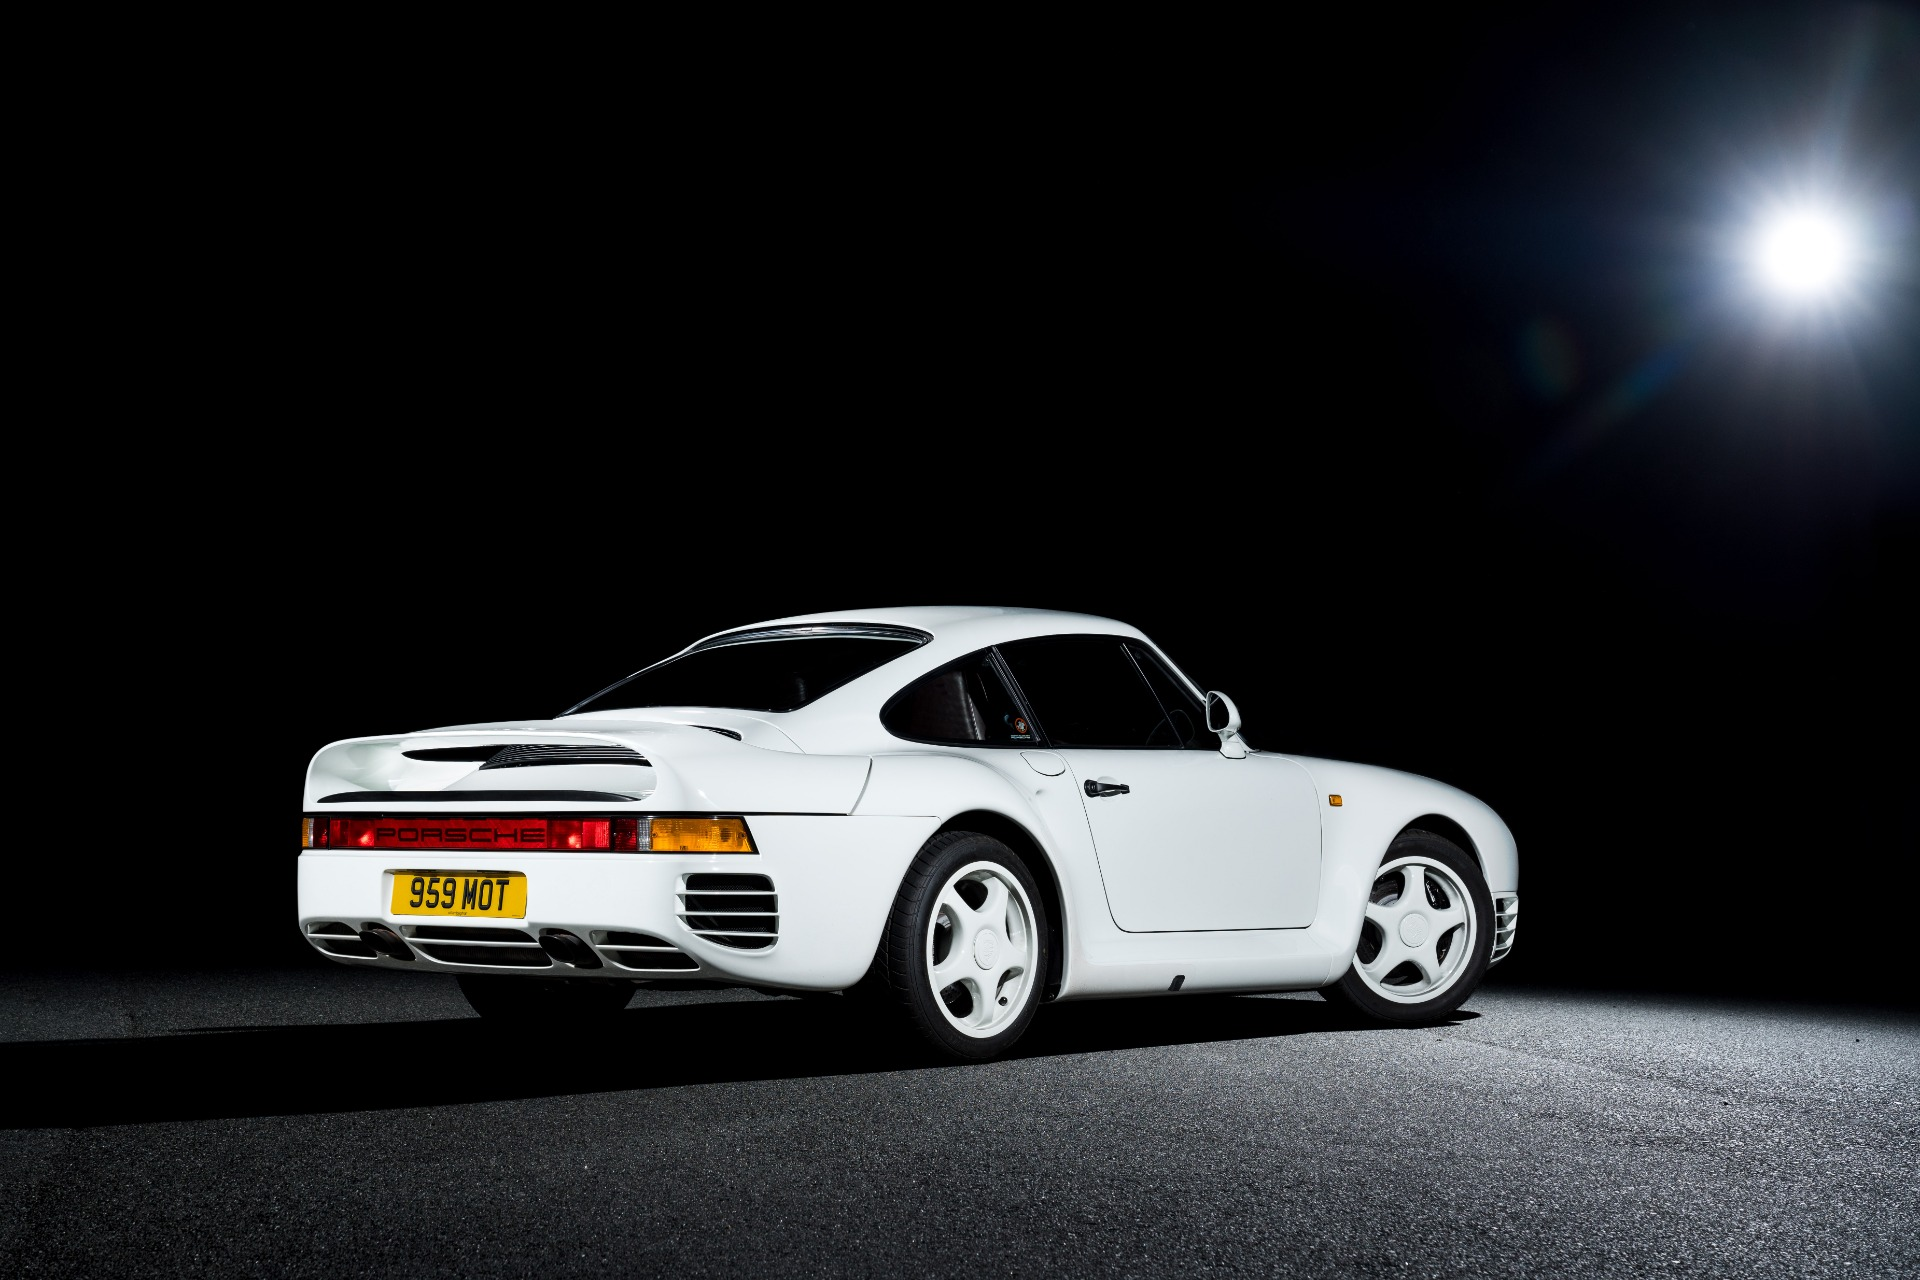 Used 1988 Porsche 959 KOMFORT COUPE / AWD / 6-SPEED MANUAL / ORIGINAL SUPERCAR for sale $1,425,000 at Formula Imports in Charlotte NC 28227 6